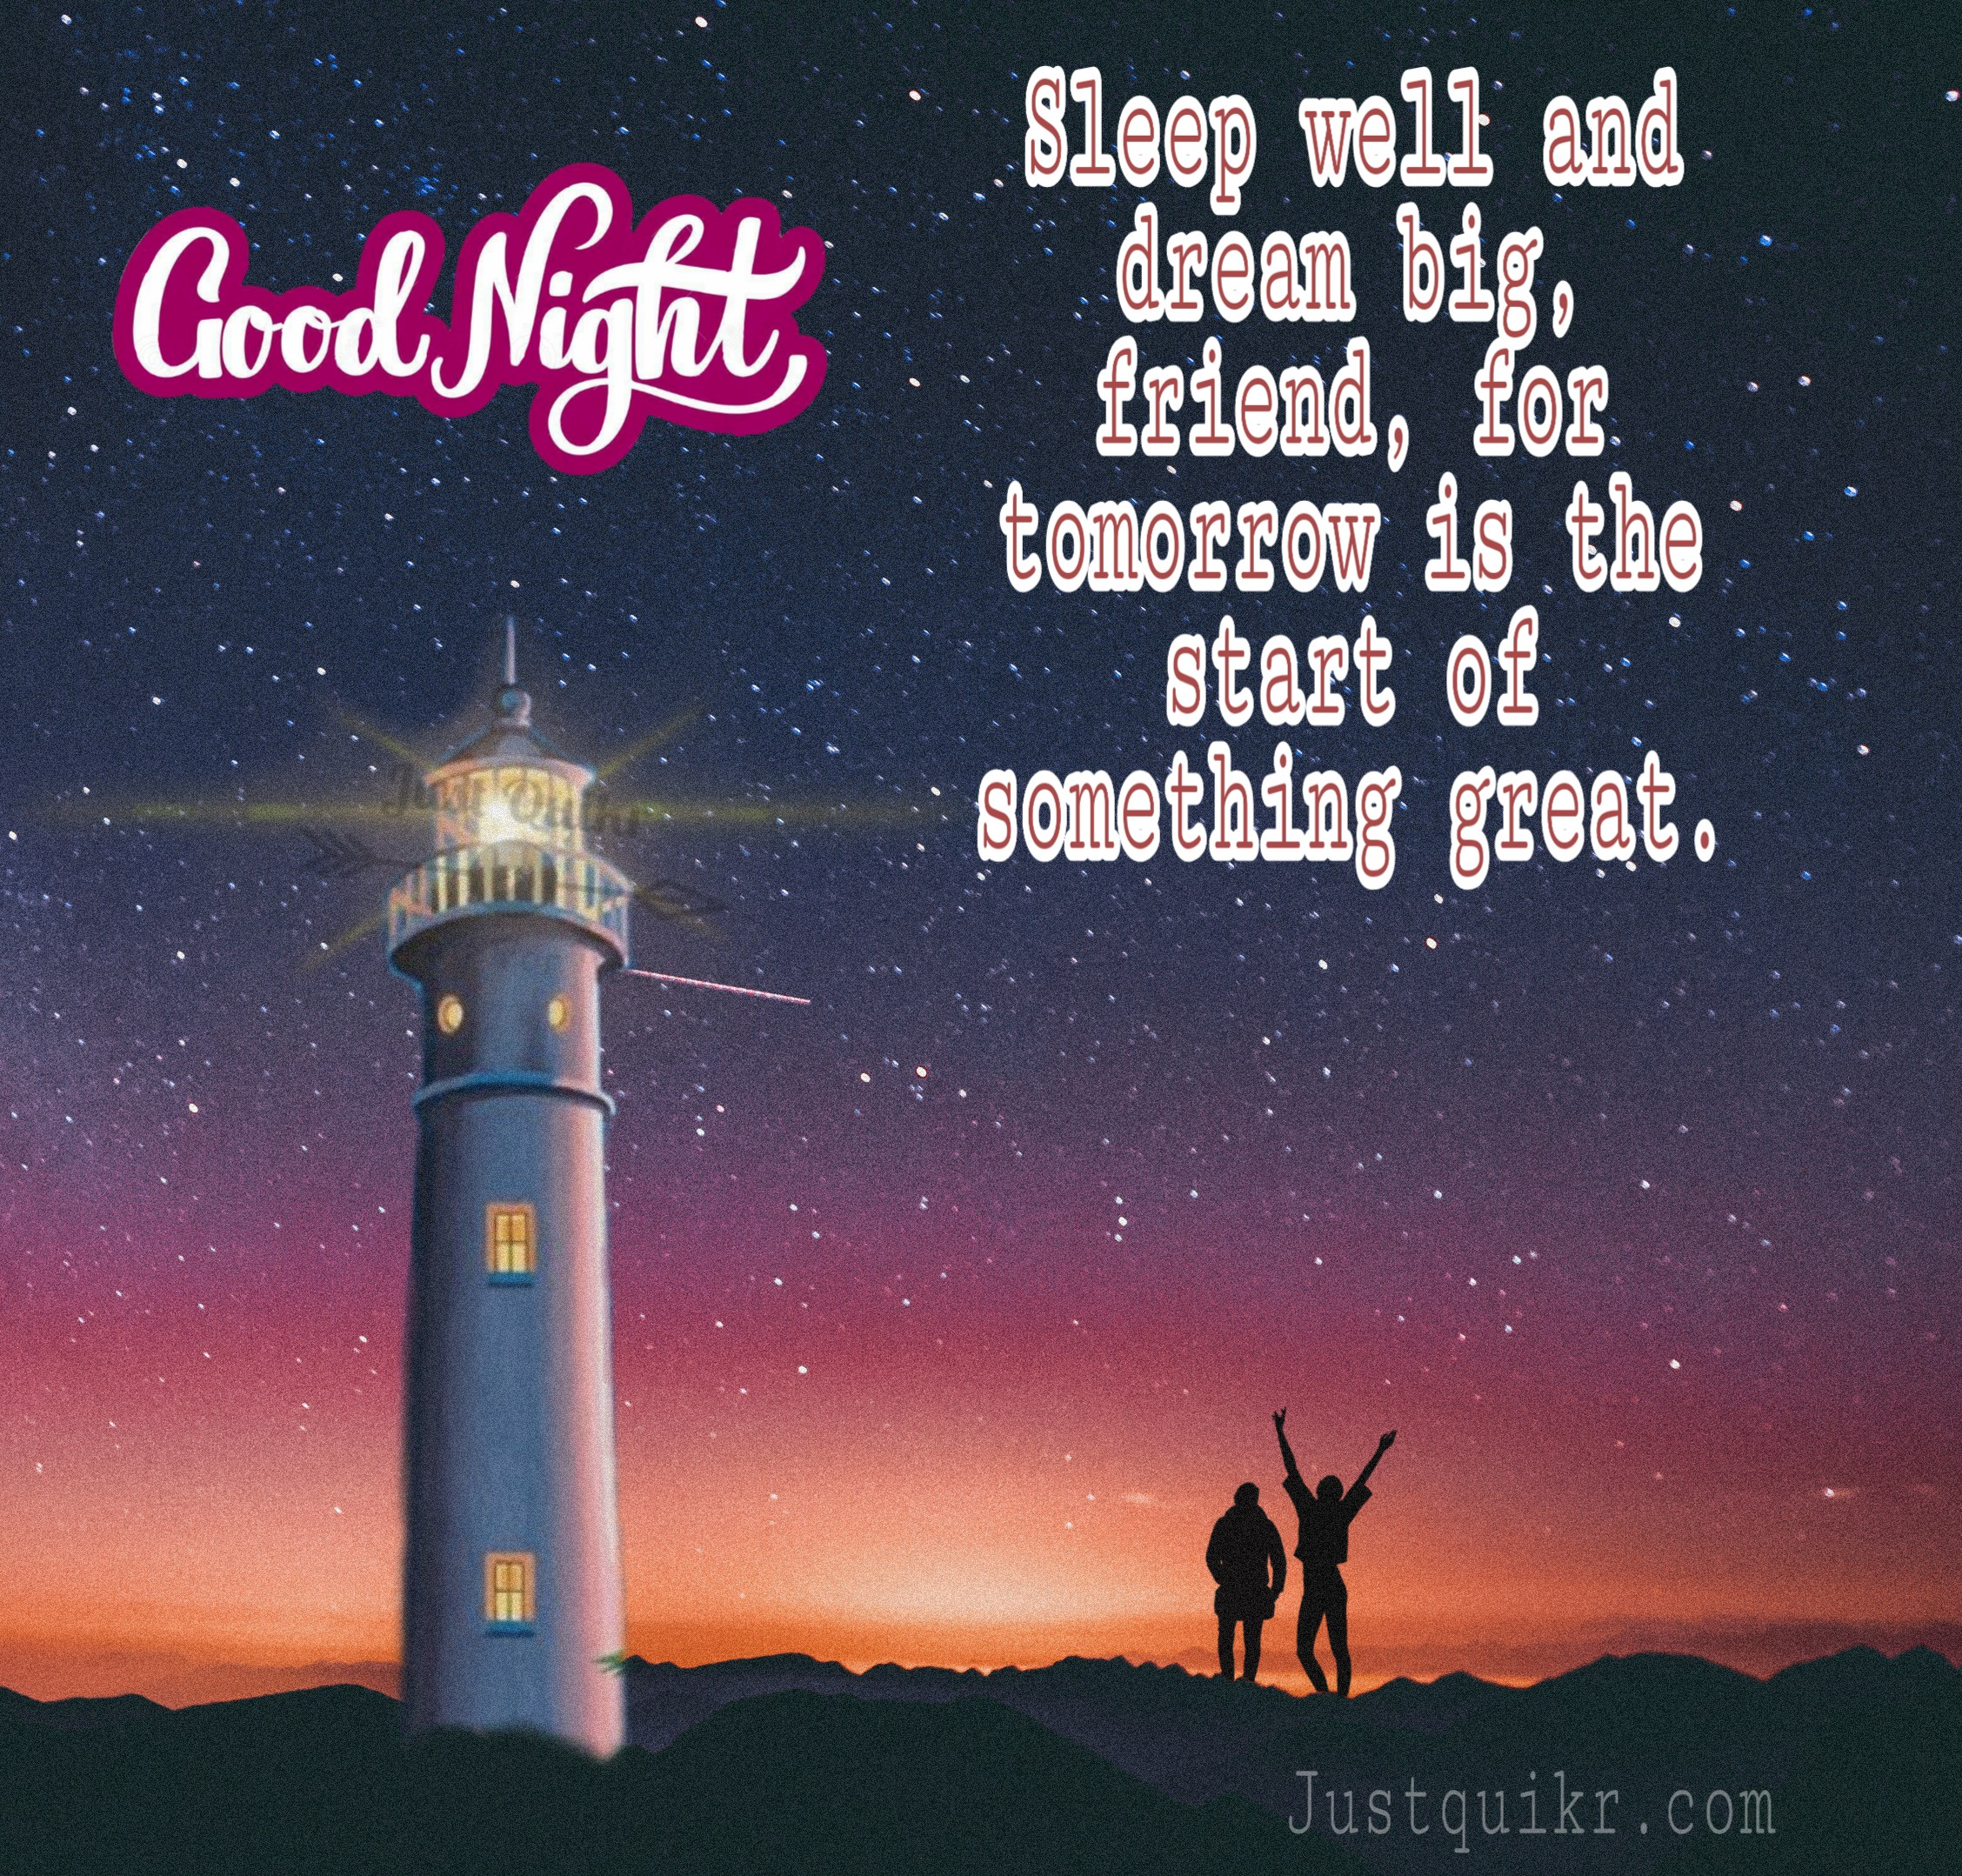 Good Night HD Pics Images For Dear Friend